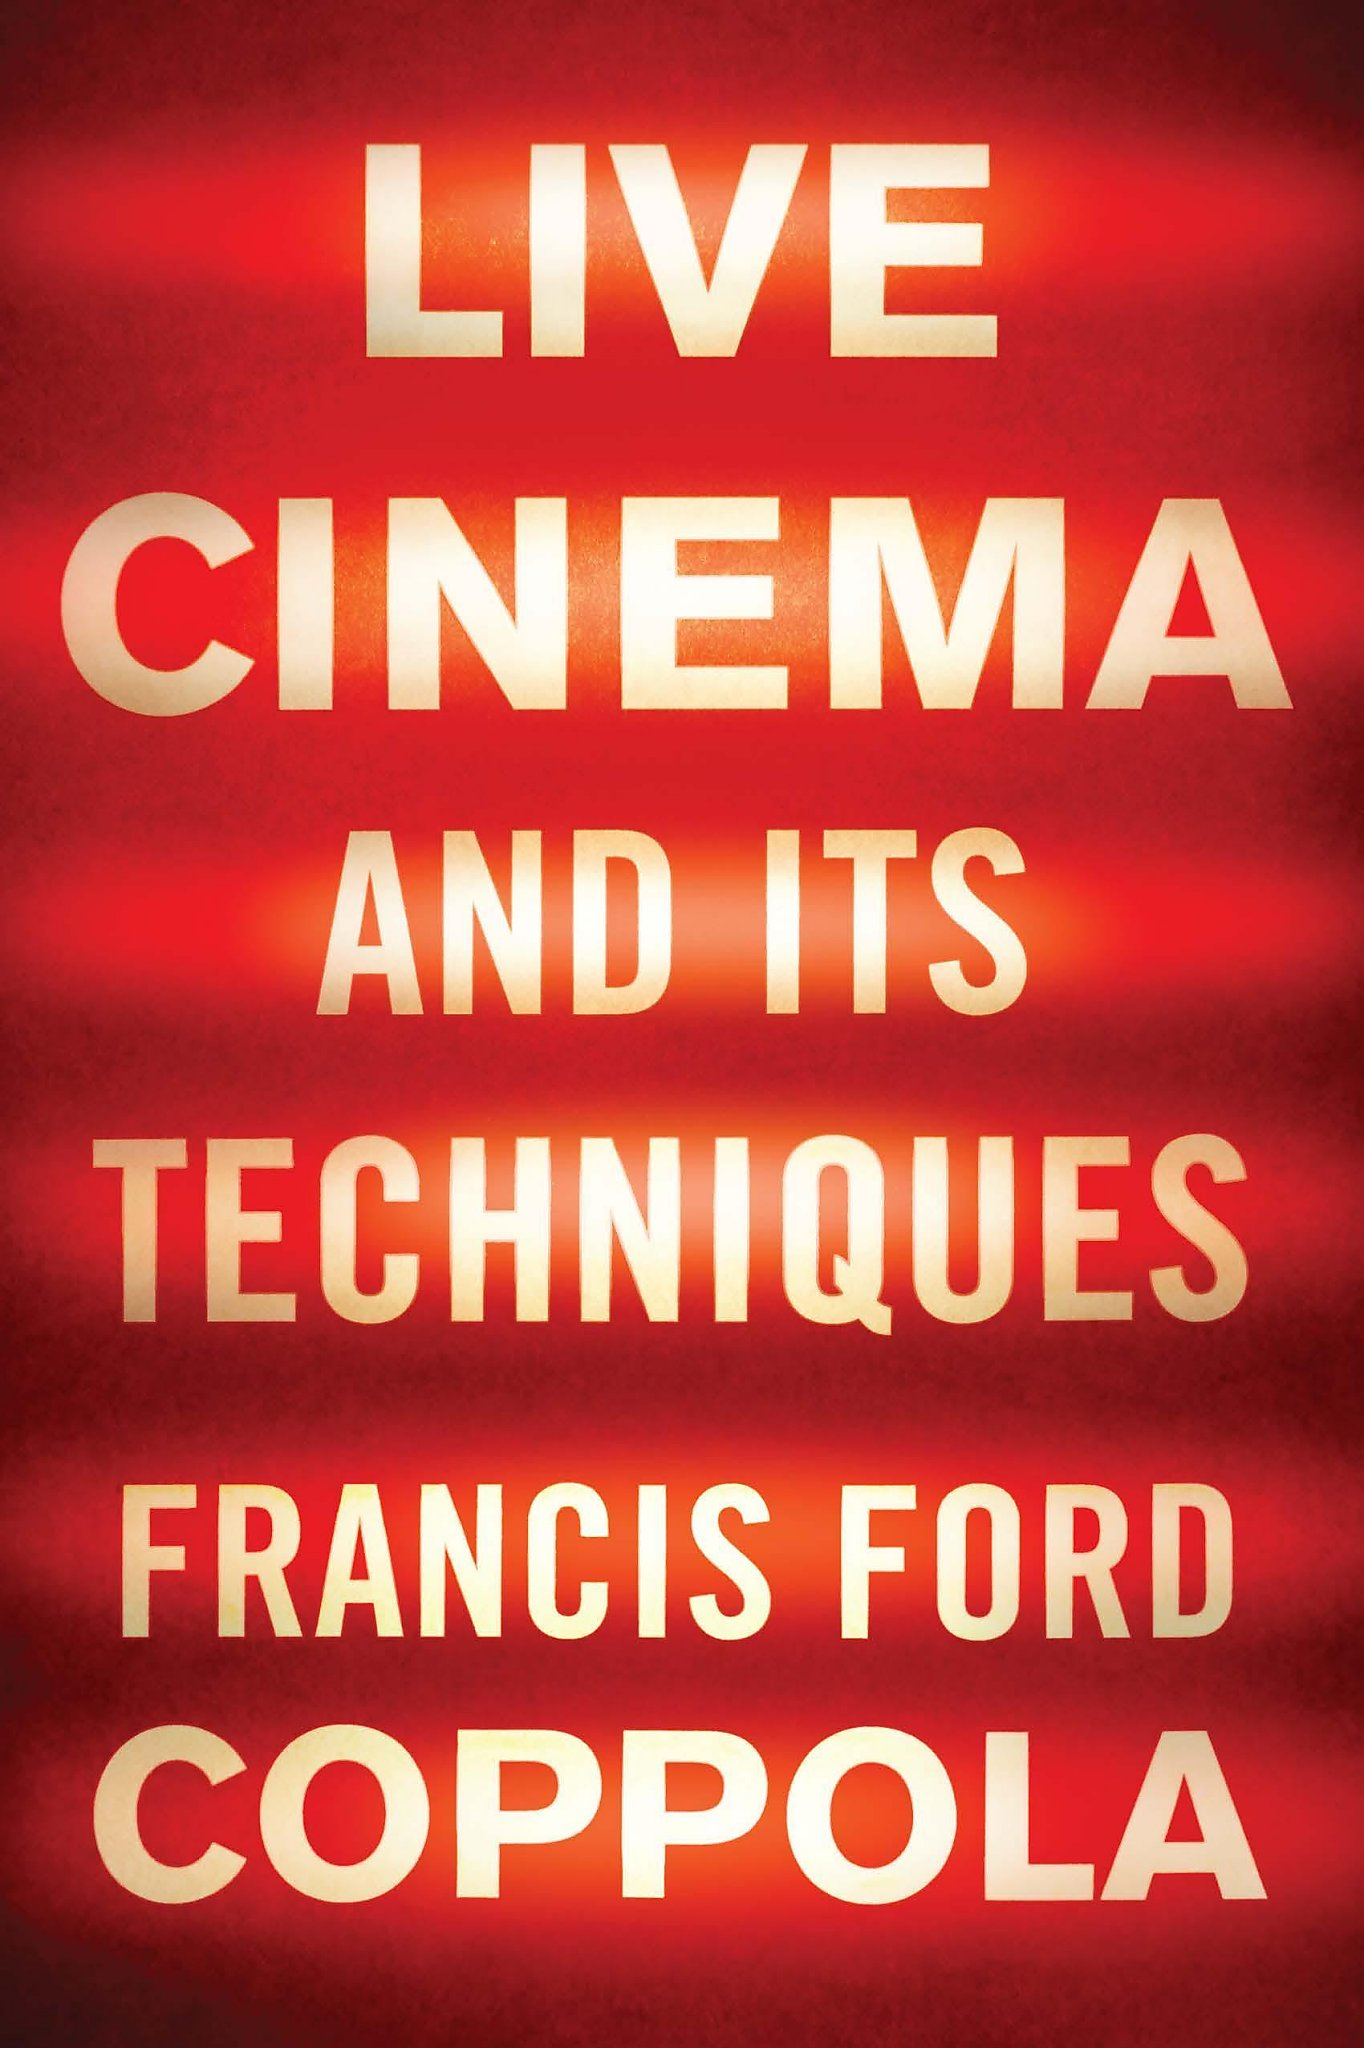 'Live Cinema and Its Techniques,' by Francis Ford Coppola